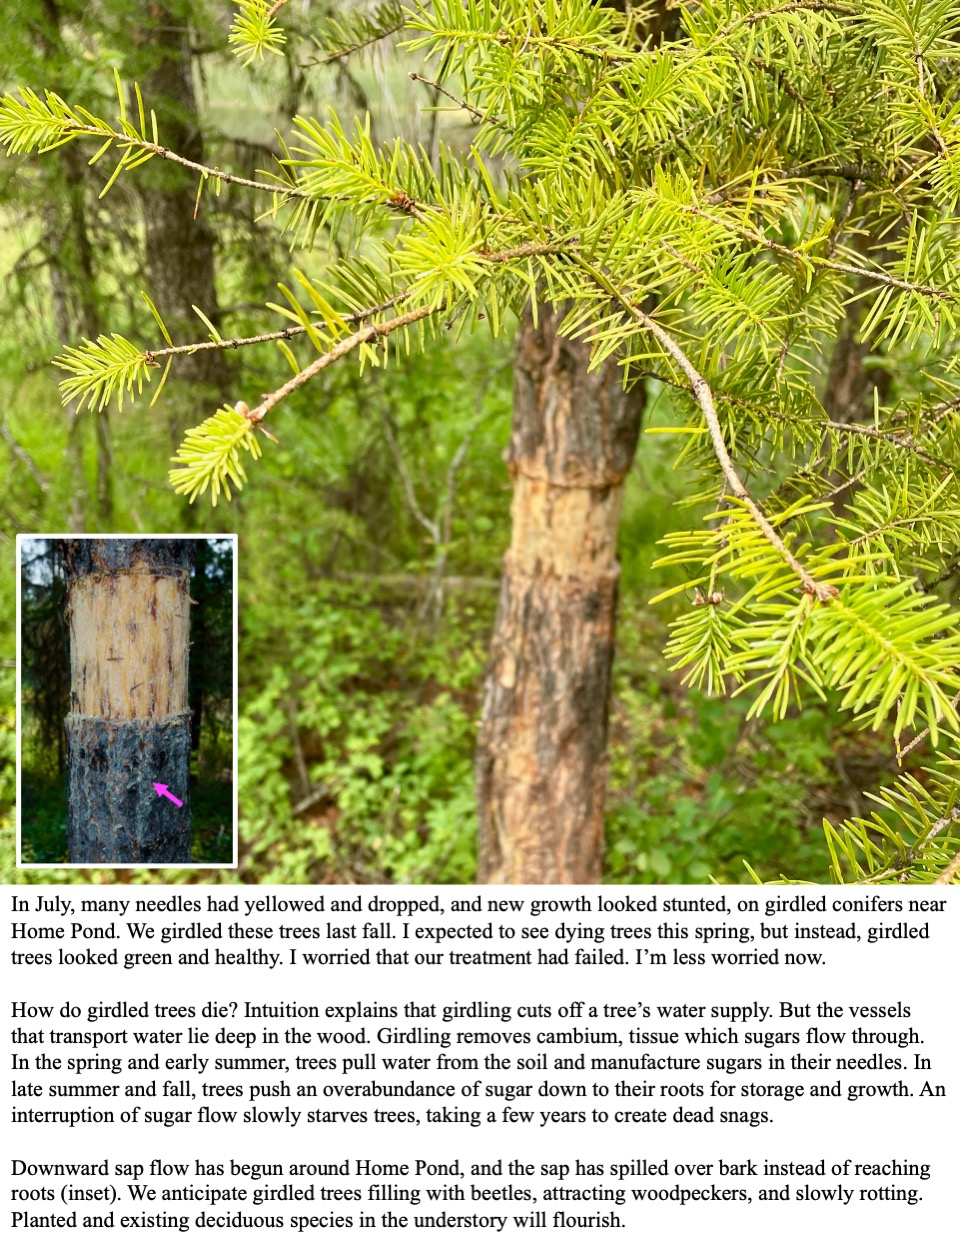 In July, many needles had yellowed and dropped, and new growth looked stunted, on girdled conifers near Home Pond.